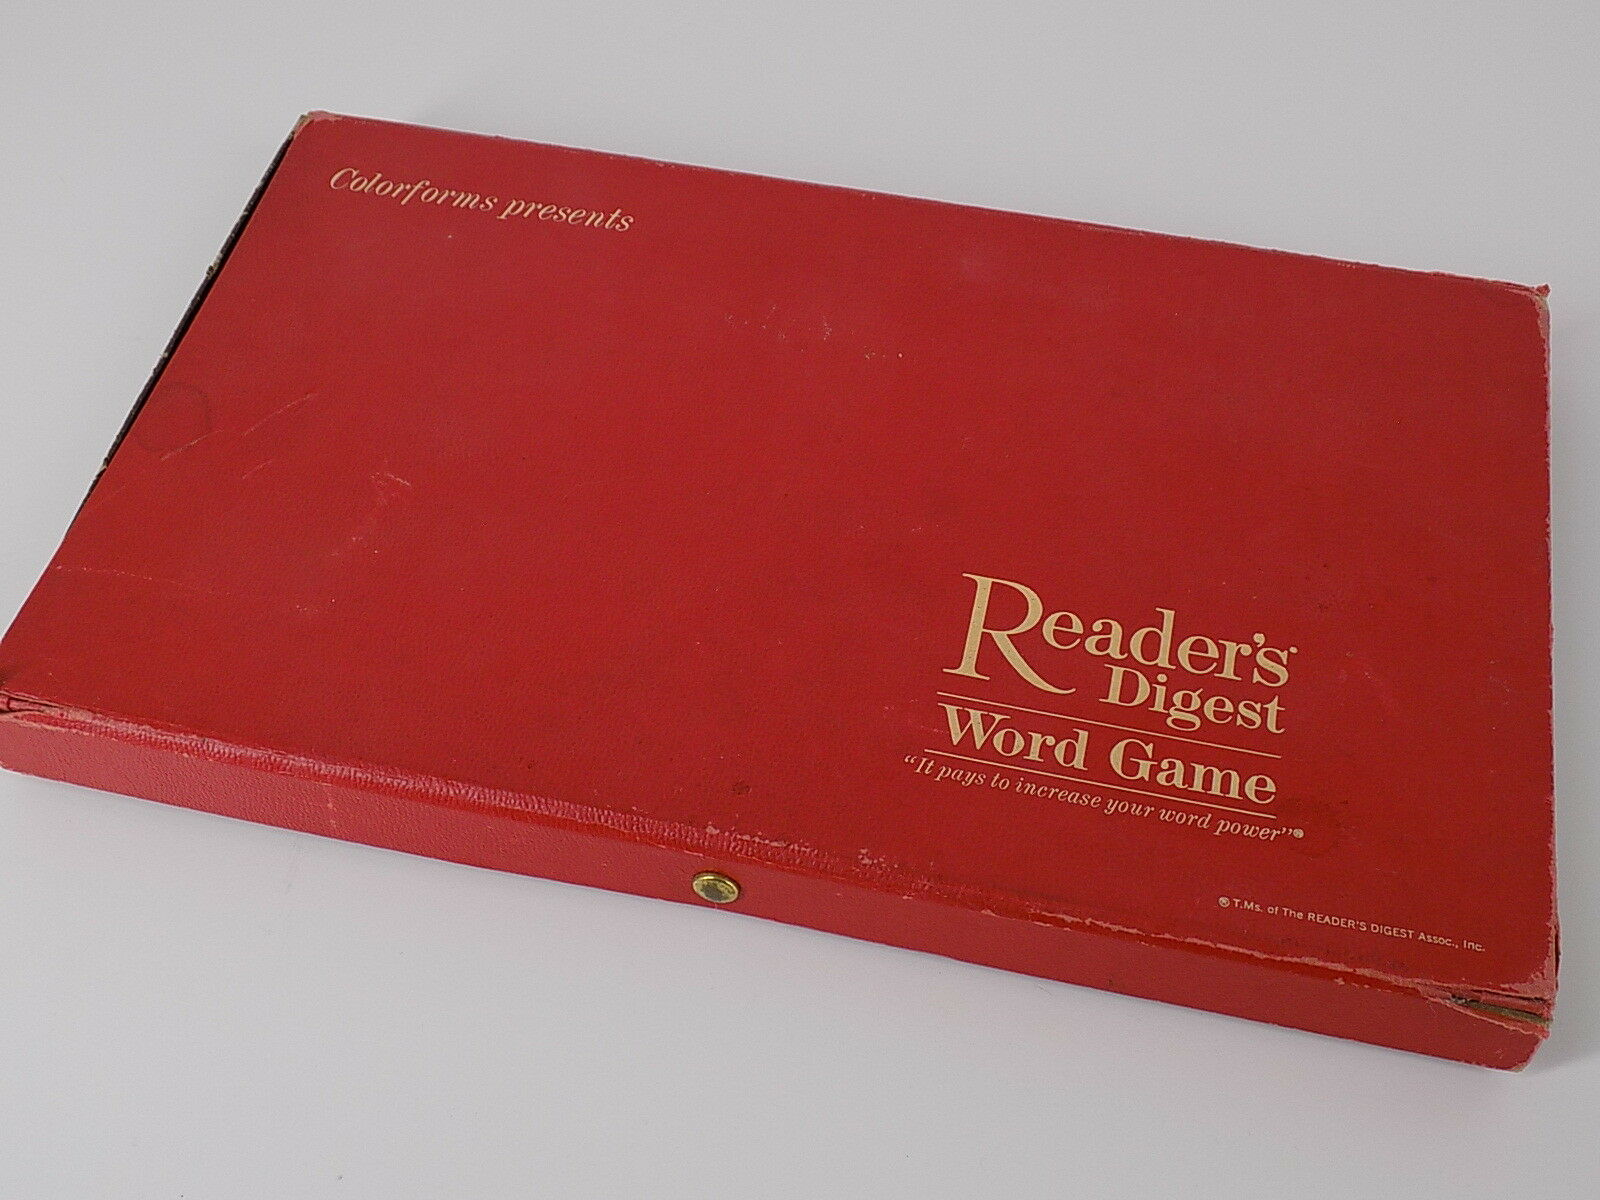 Vintage 1963 colorforms Readers Digest It Pays to Increase Word Power Word Game